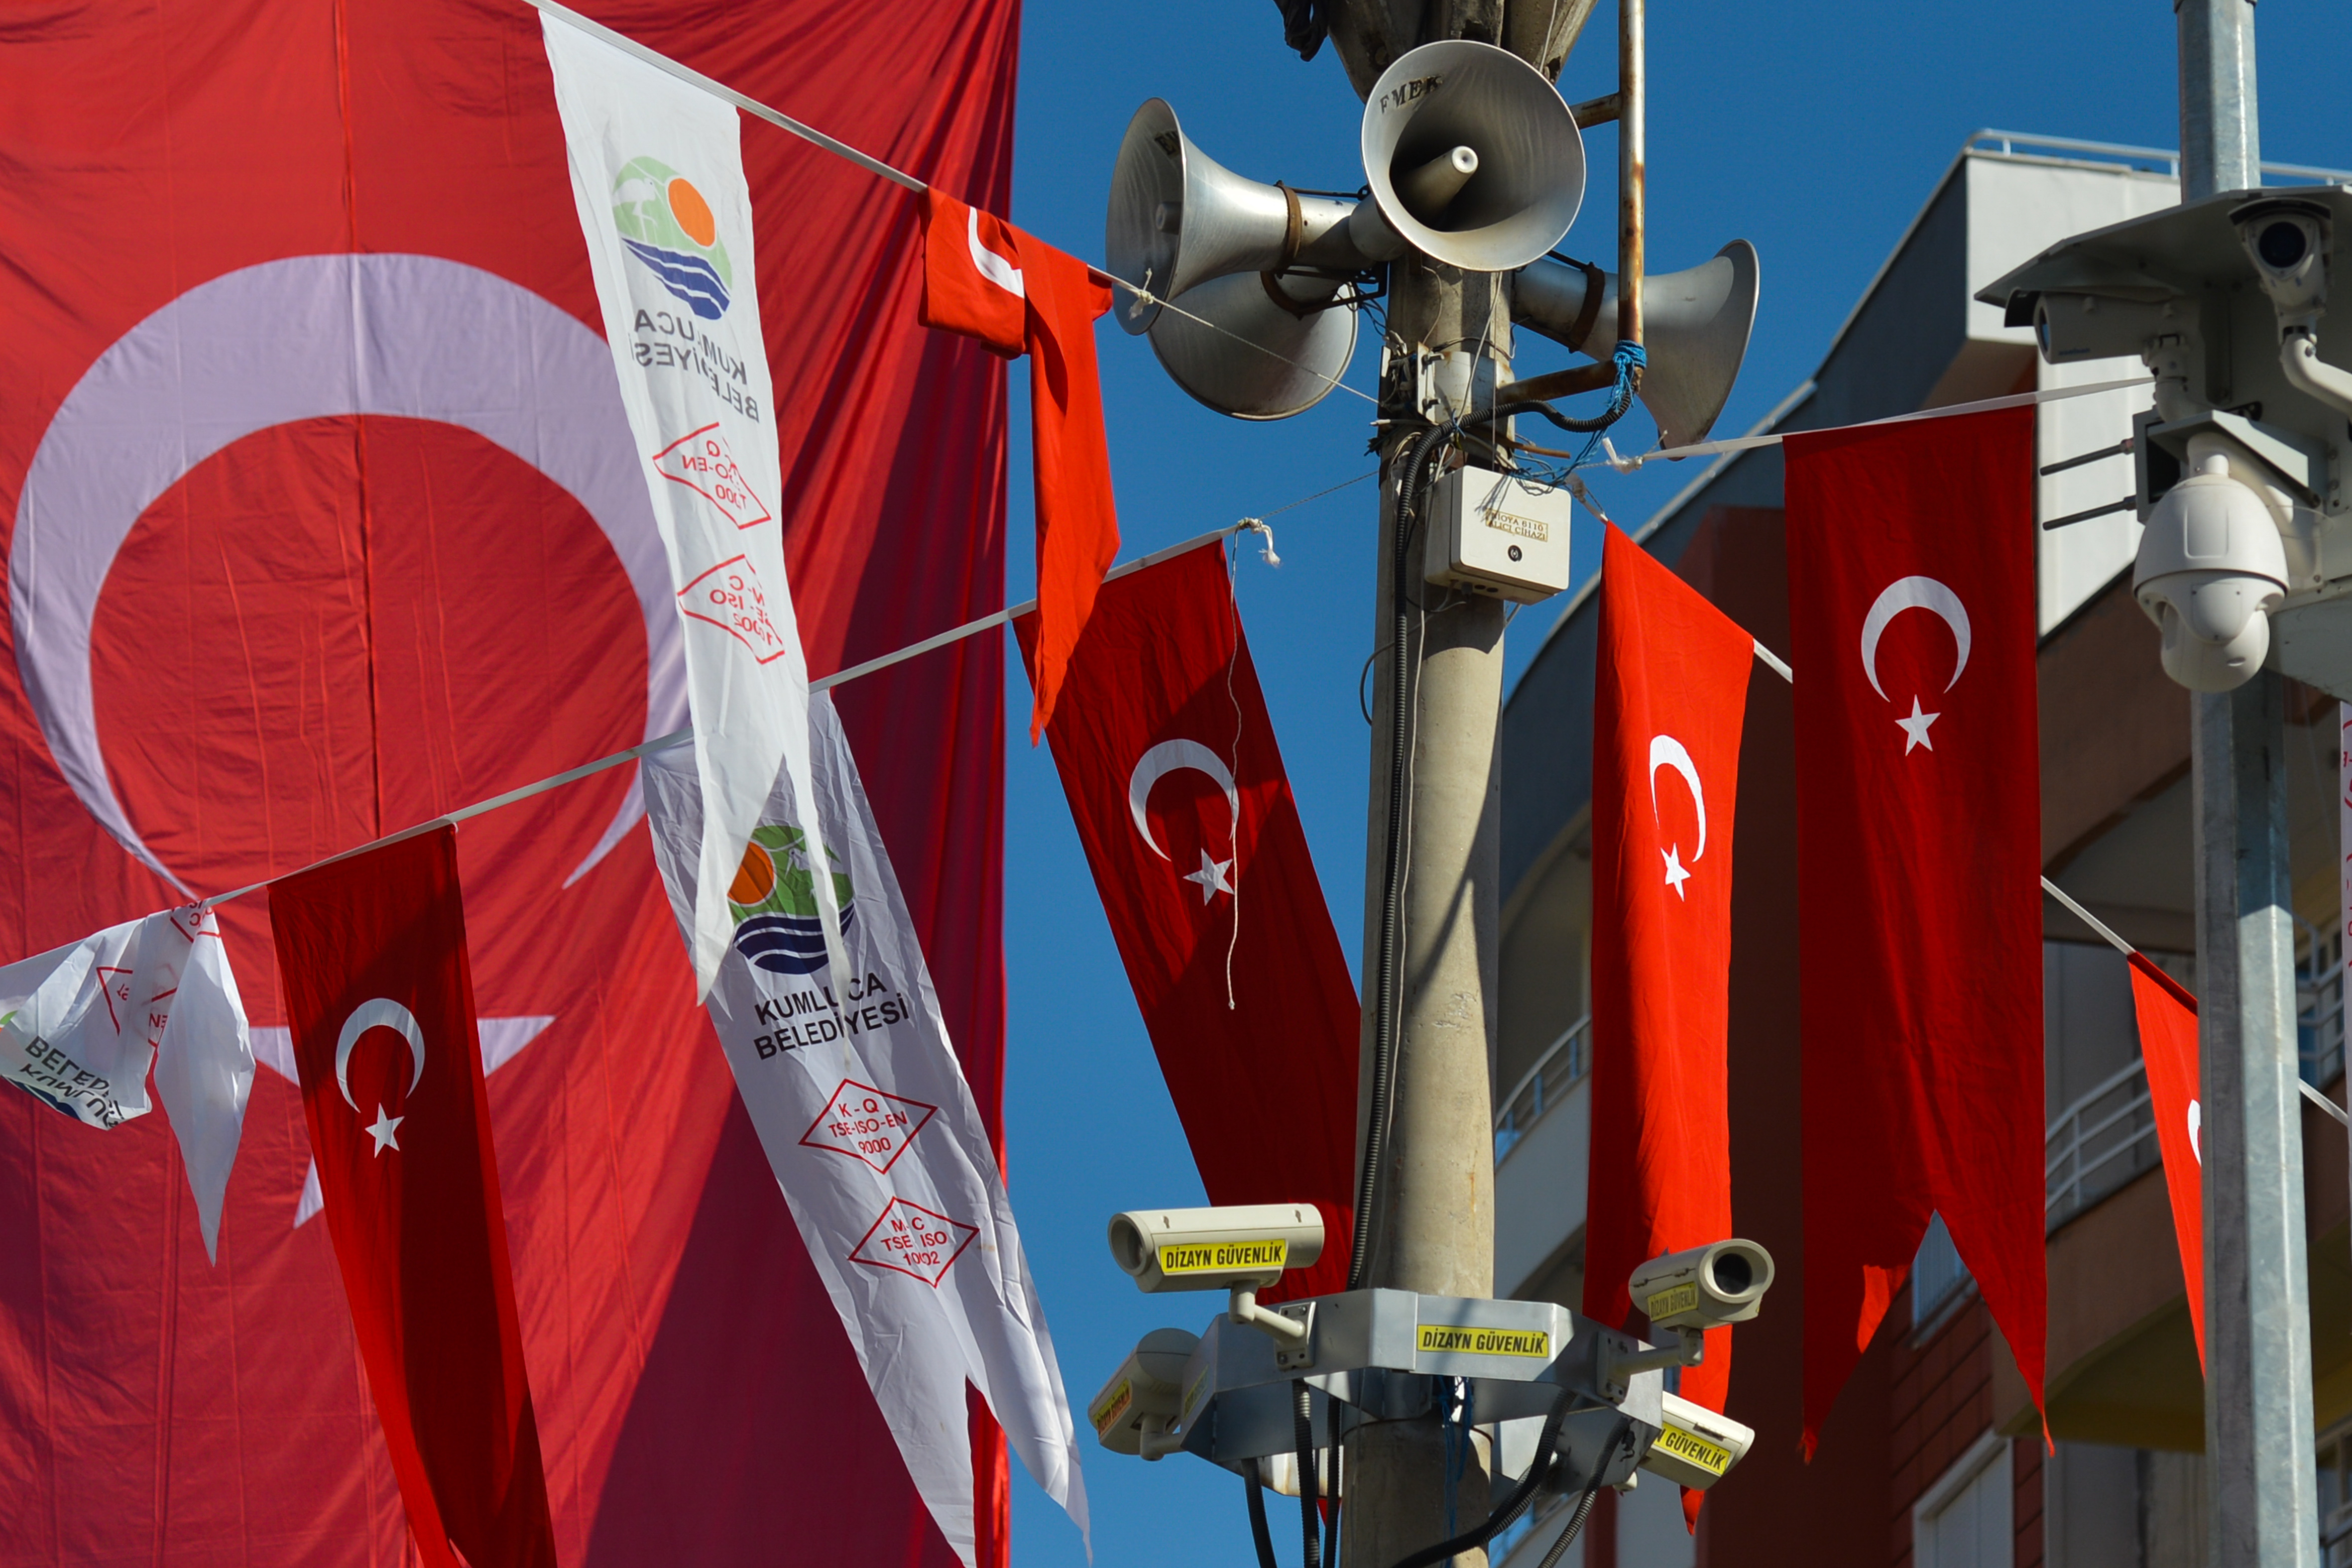 Turkish National flags and CCTV cameras and spikers seen in the main roundabout of Kumluca. On Wednesday, 11 October 2017, in Kumluka, Turkey. (Photo by Artur Widak/NurPhoto via Getty Images)